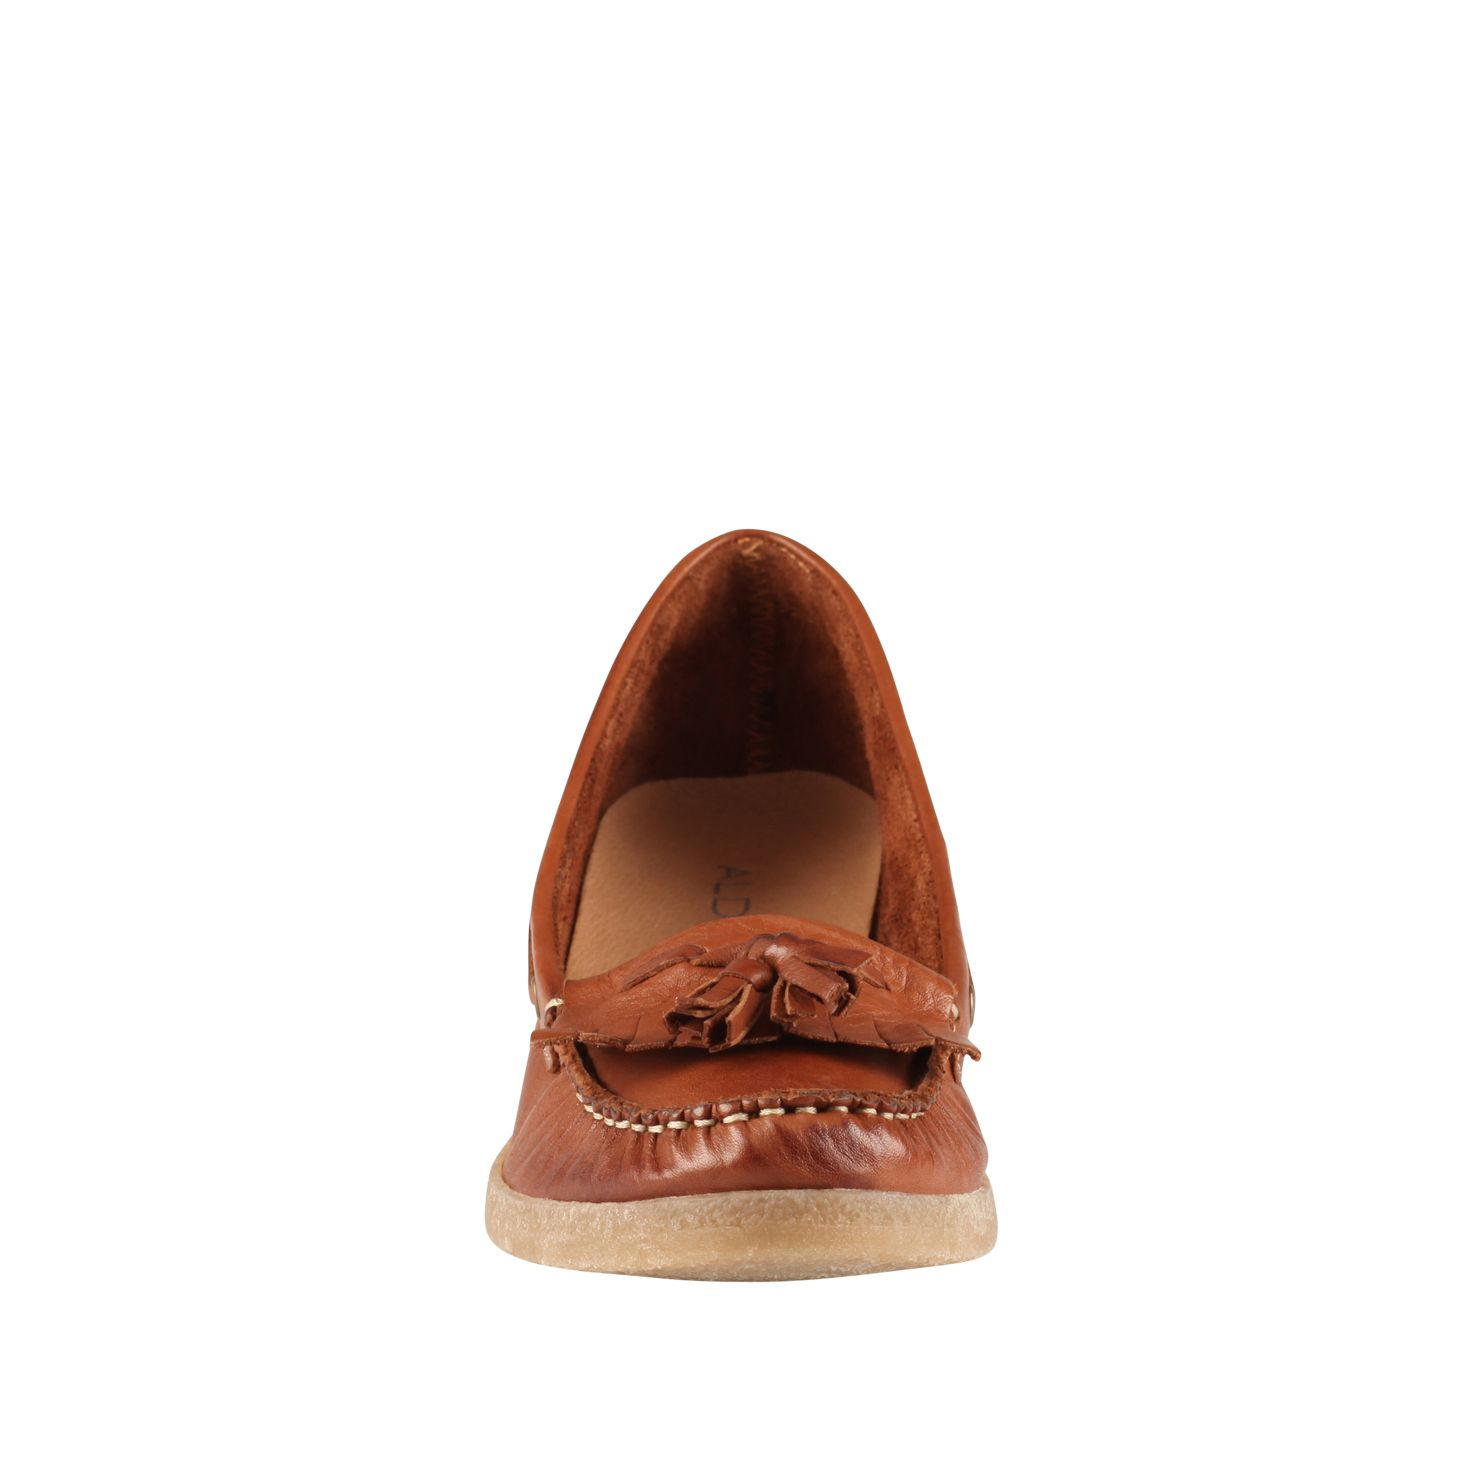 Rennee loafer wedge shoes